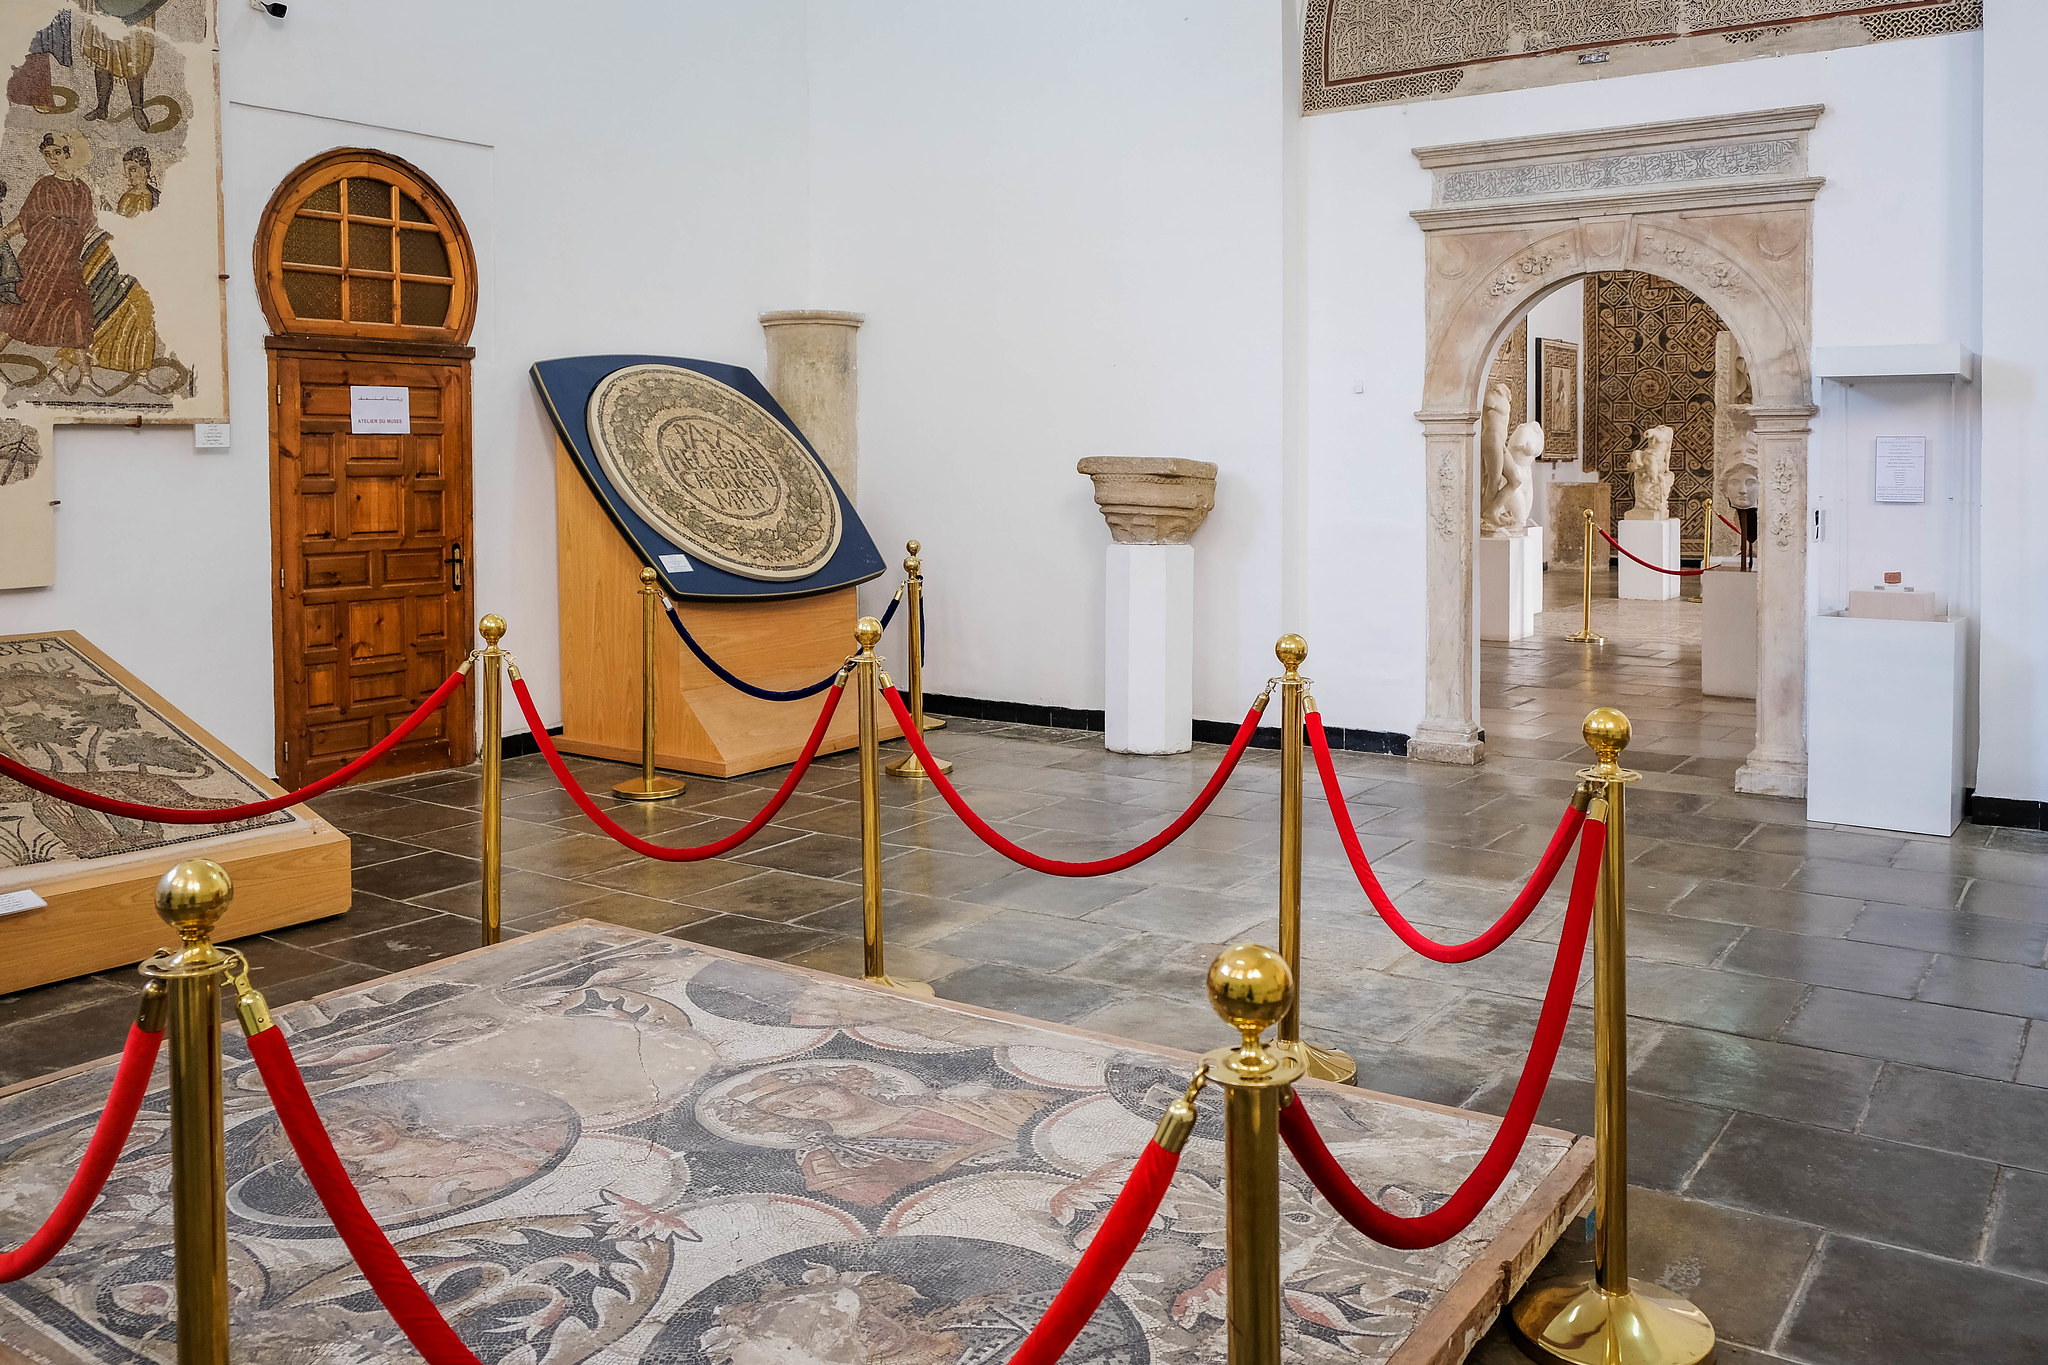 Inside the Bardo Museum, Algiers